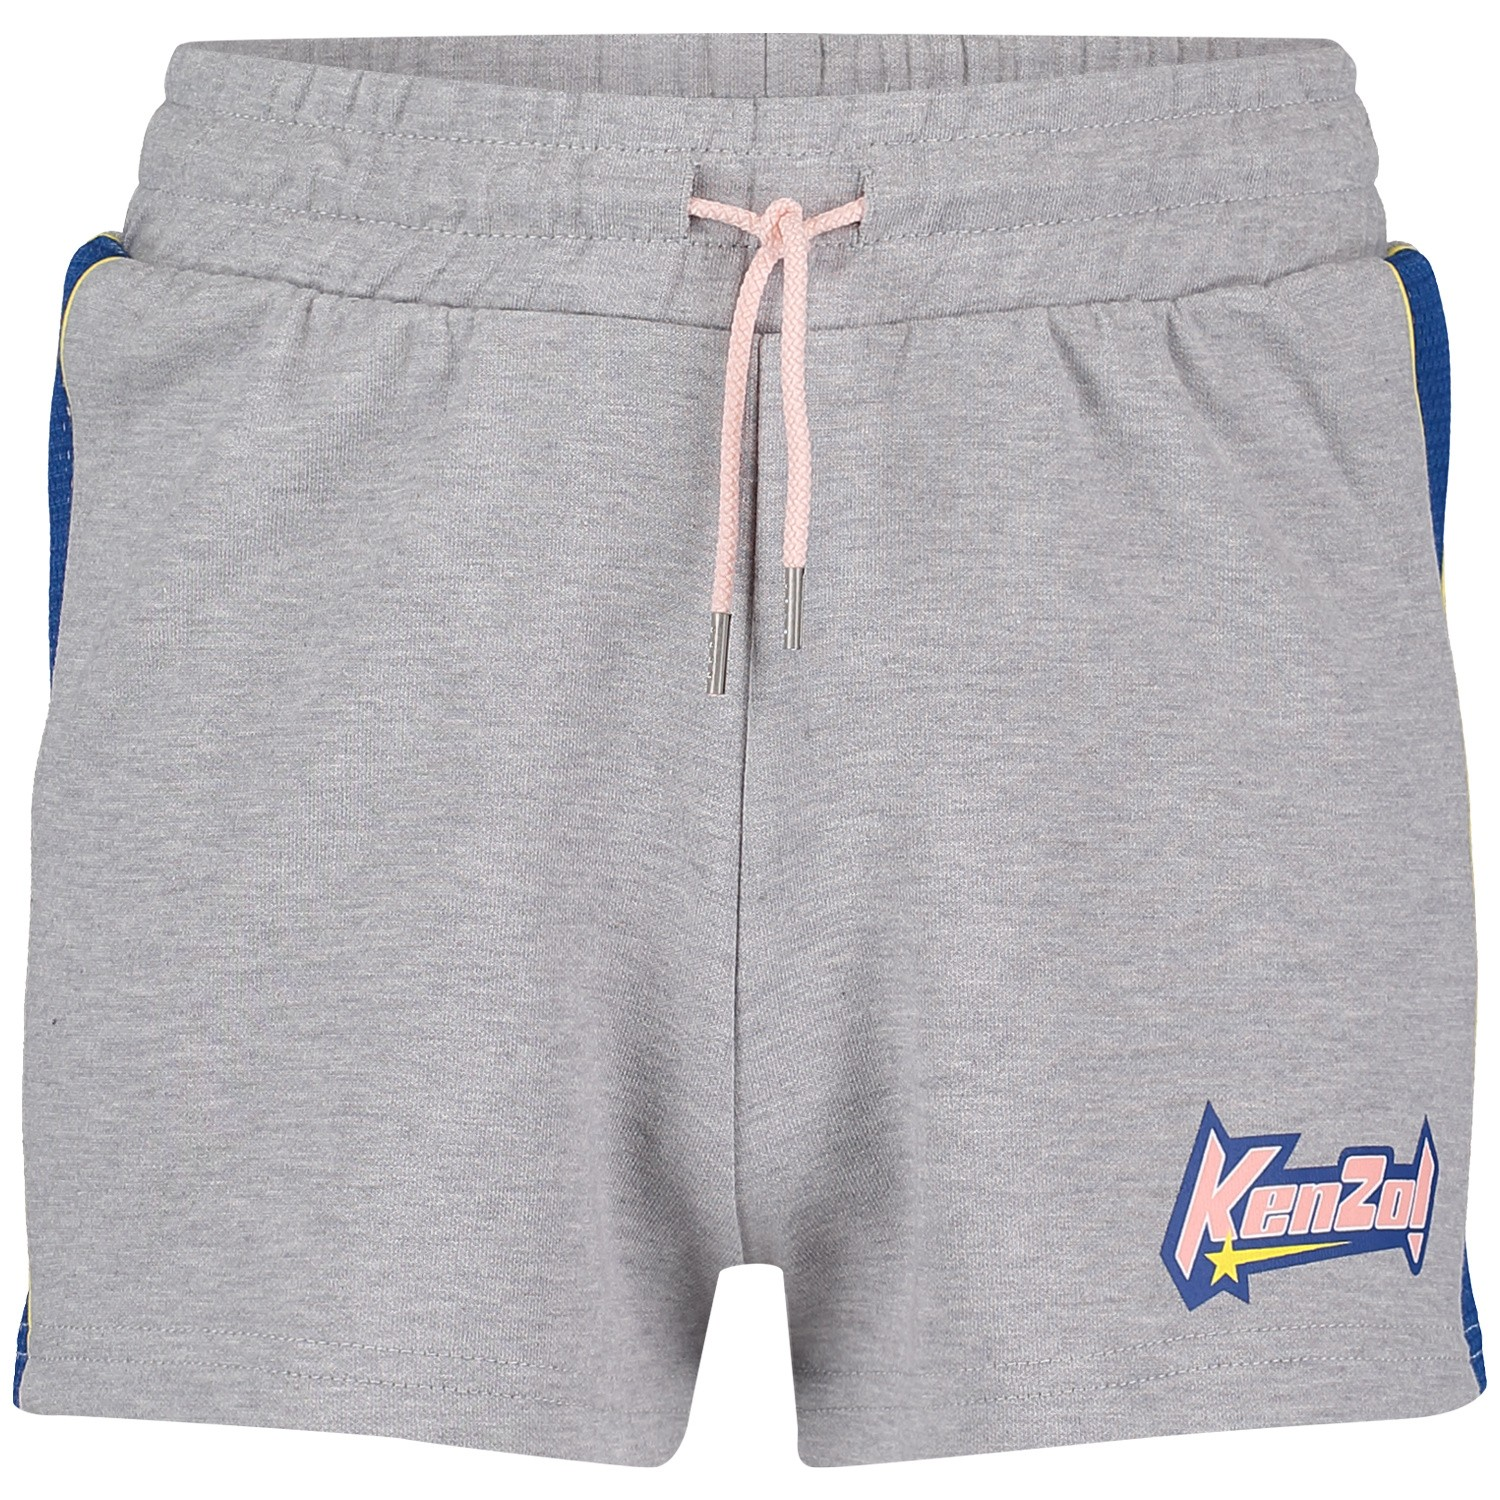 Picture of Kenzo KN26068 kids shorts light gray